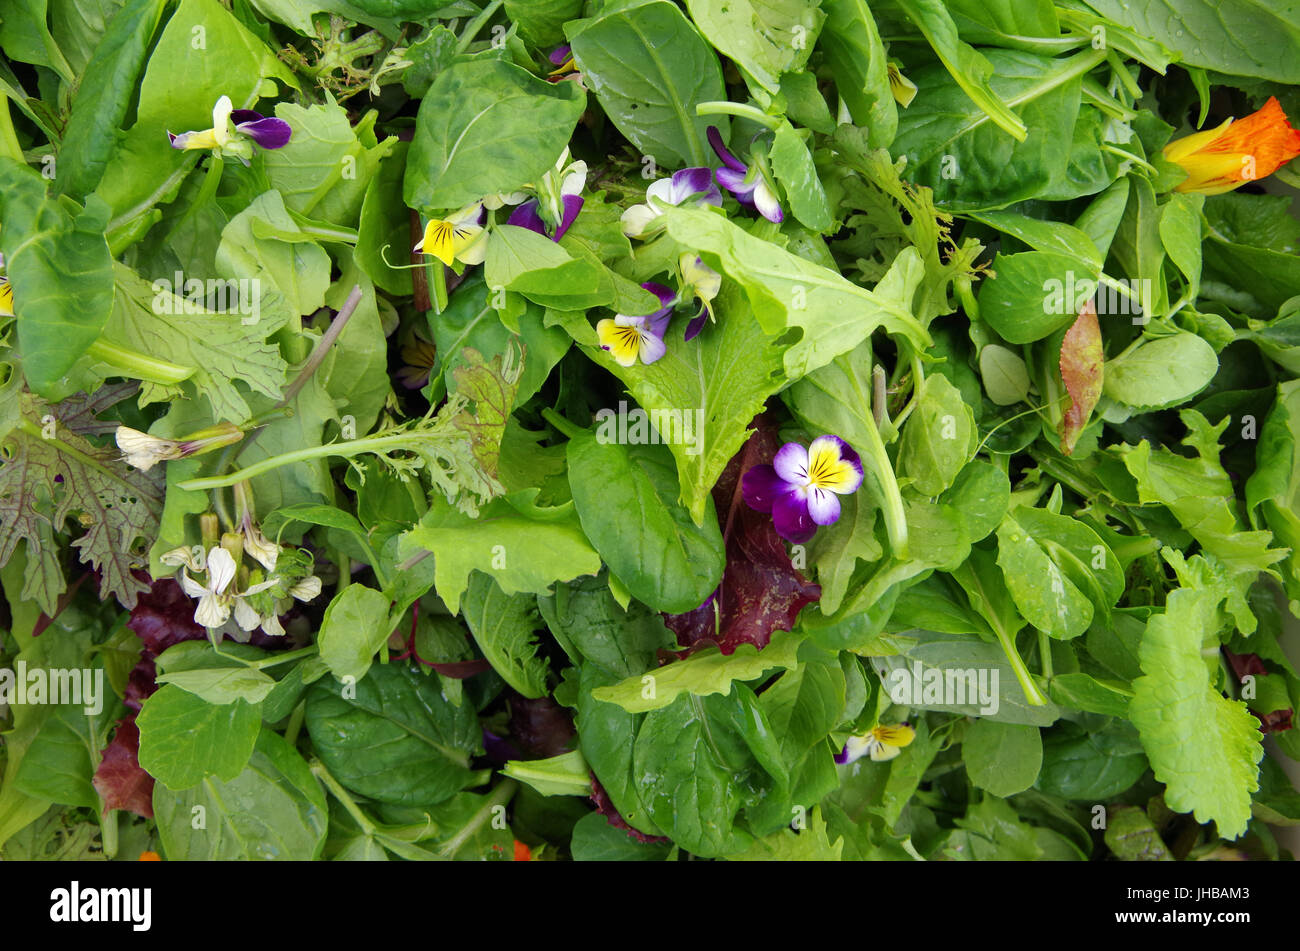 Mesclun salad greens with edible flowers - Stock Image